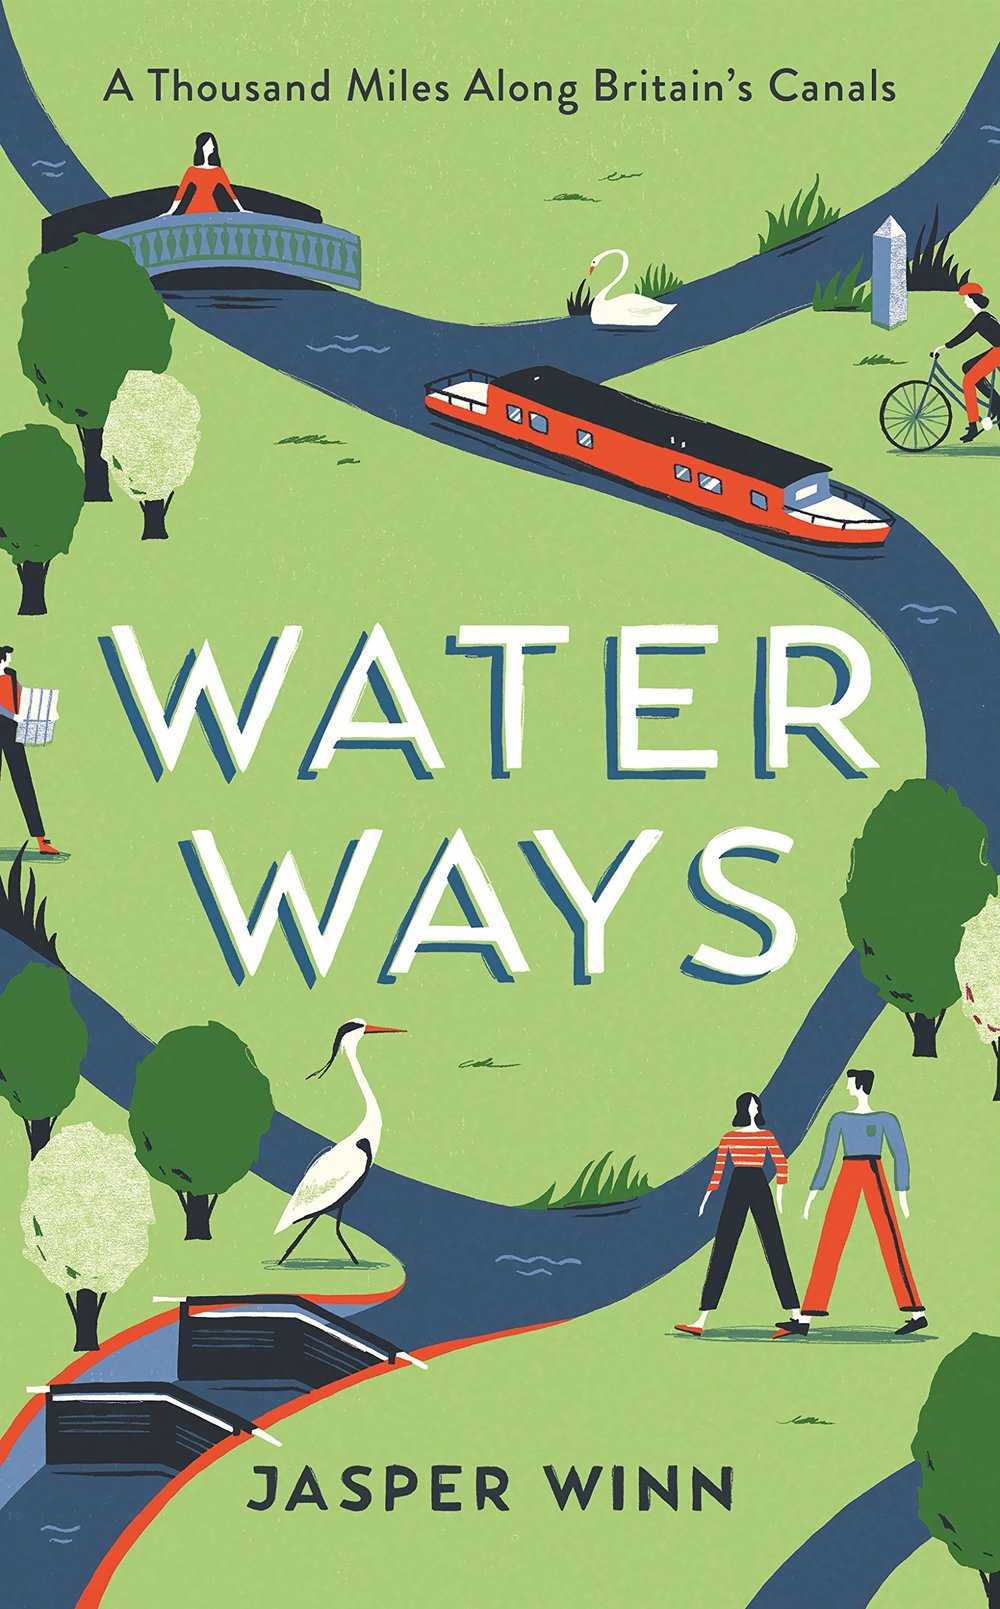 water-ways-by-jasper-winn.jpg